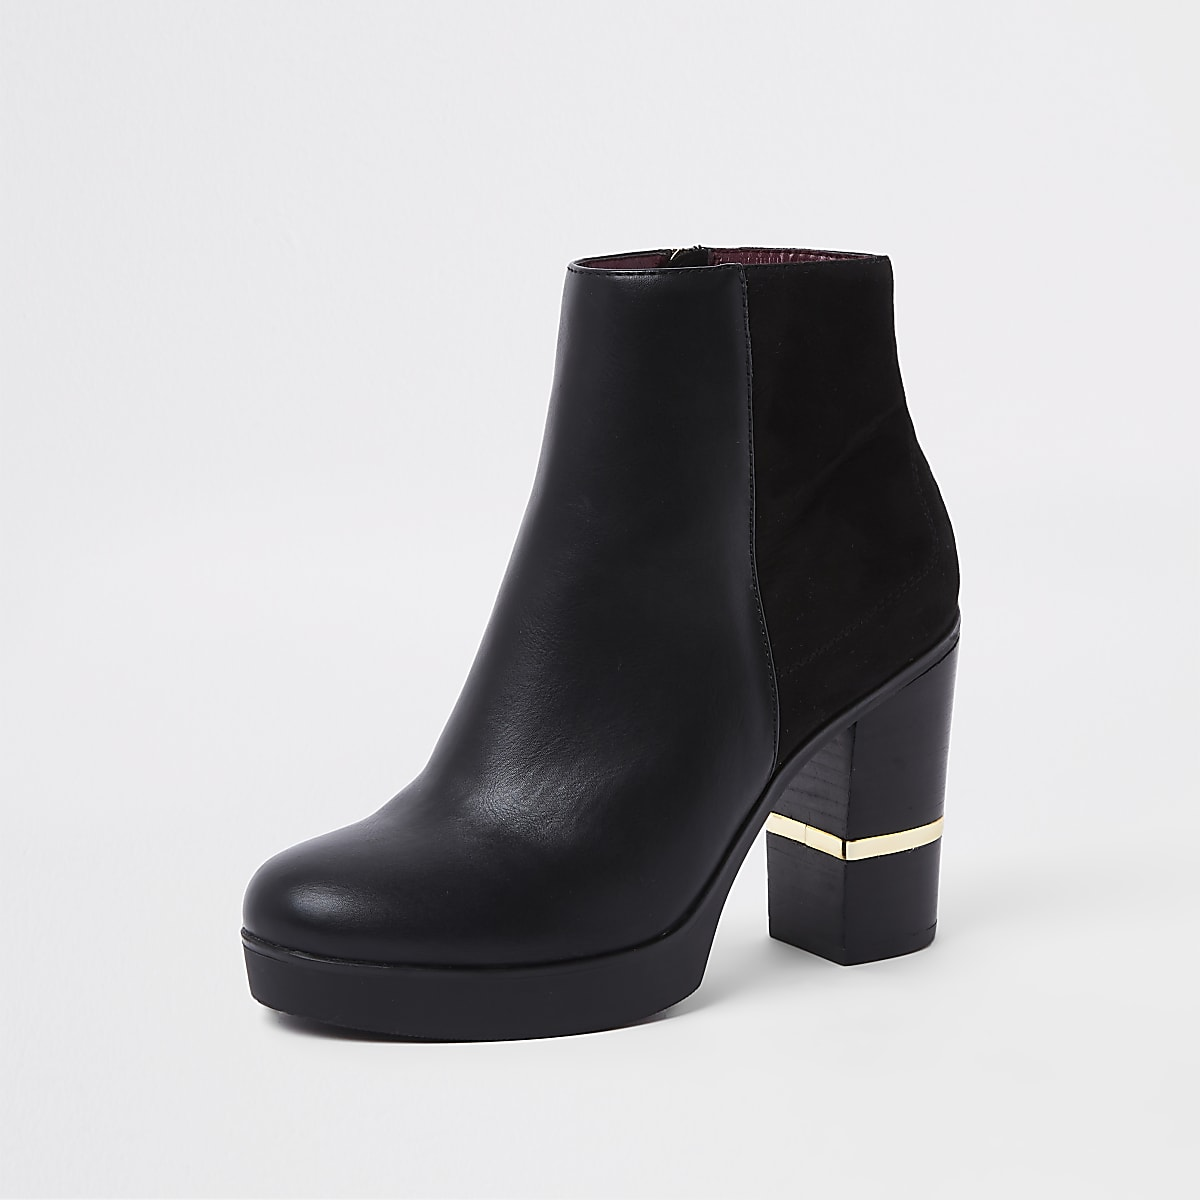 848c5b3f318 Black faux leather block heel ankle boots